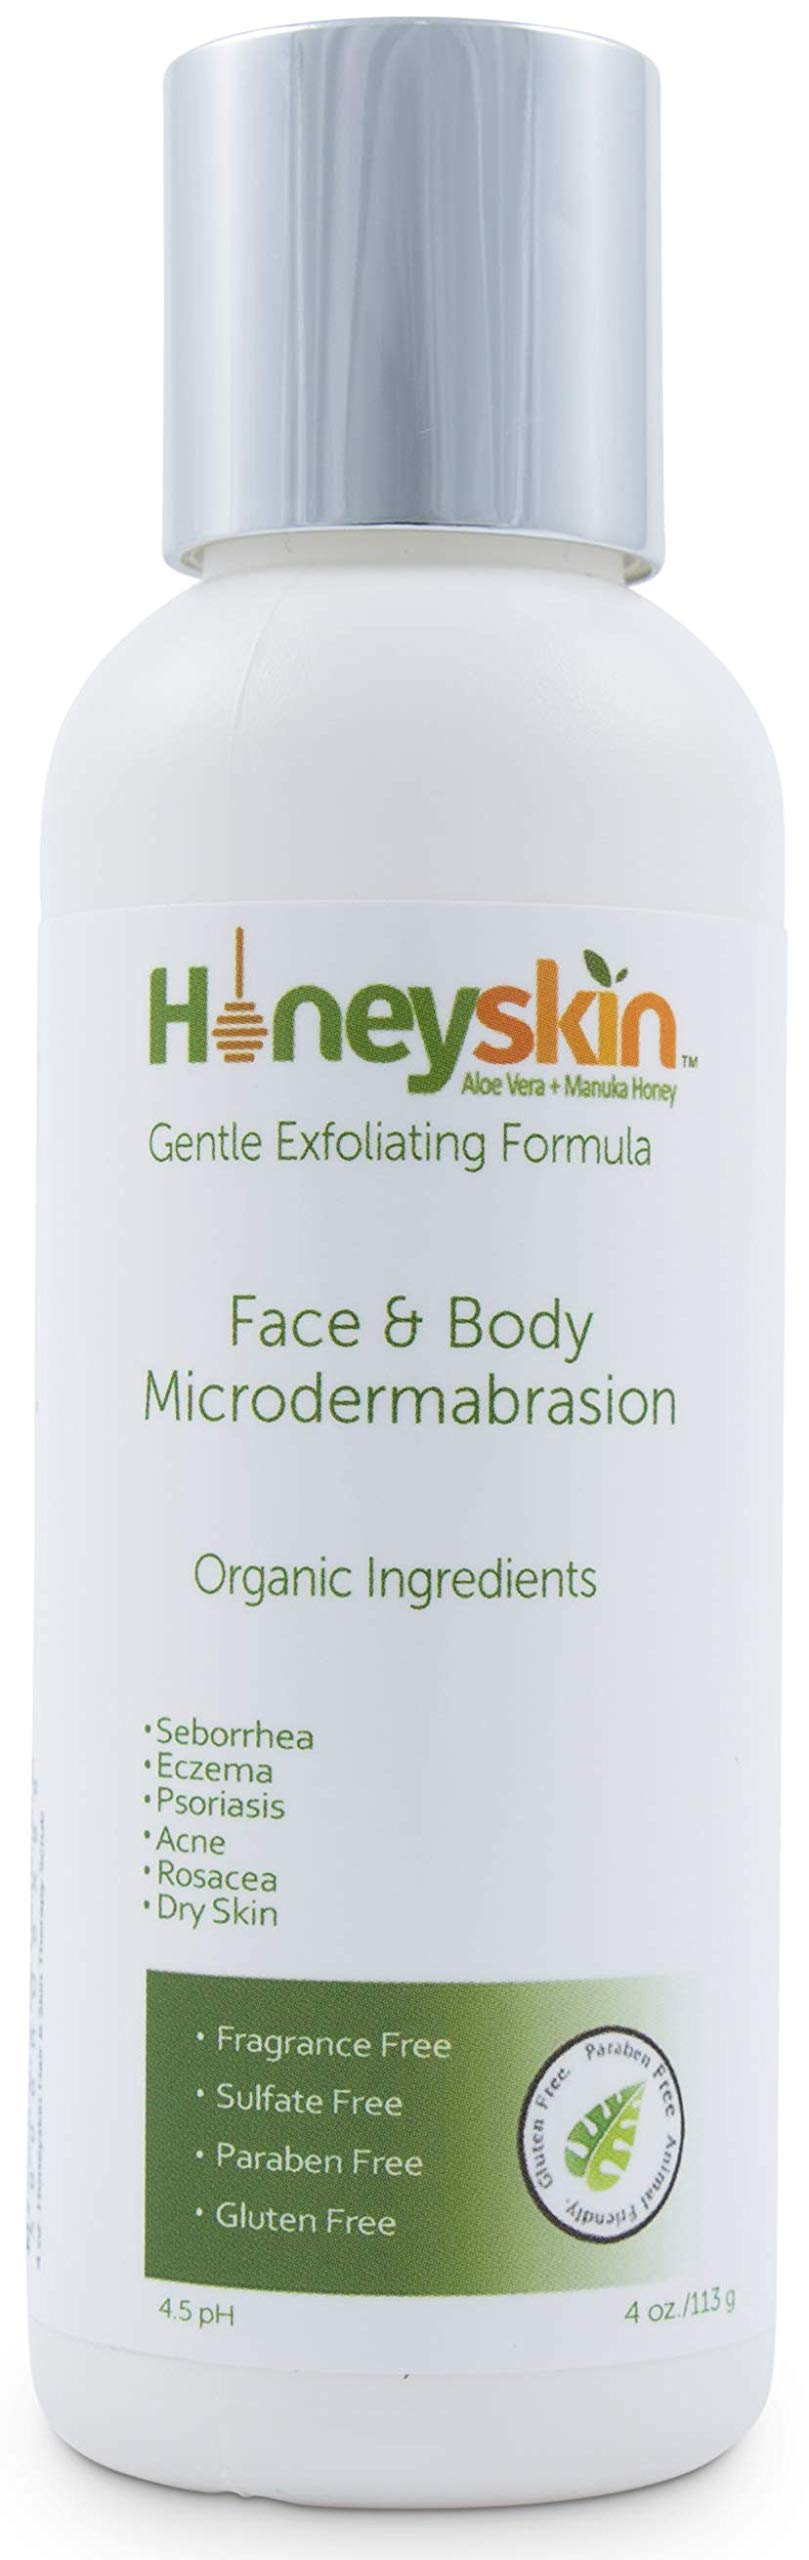 Face and Body Microdermabrasion Scrub - Natural & Organic Face Exfoliator with Manuka Honey & Aloe Vera for Dry & Sensitive Skin - Anti Aging Brightening Facial Scrub and Deep Pore Cleanser (4 oz)